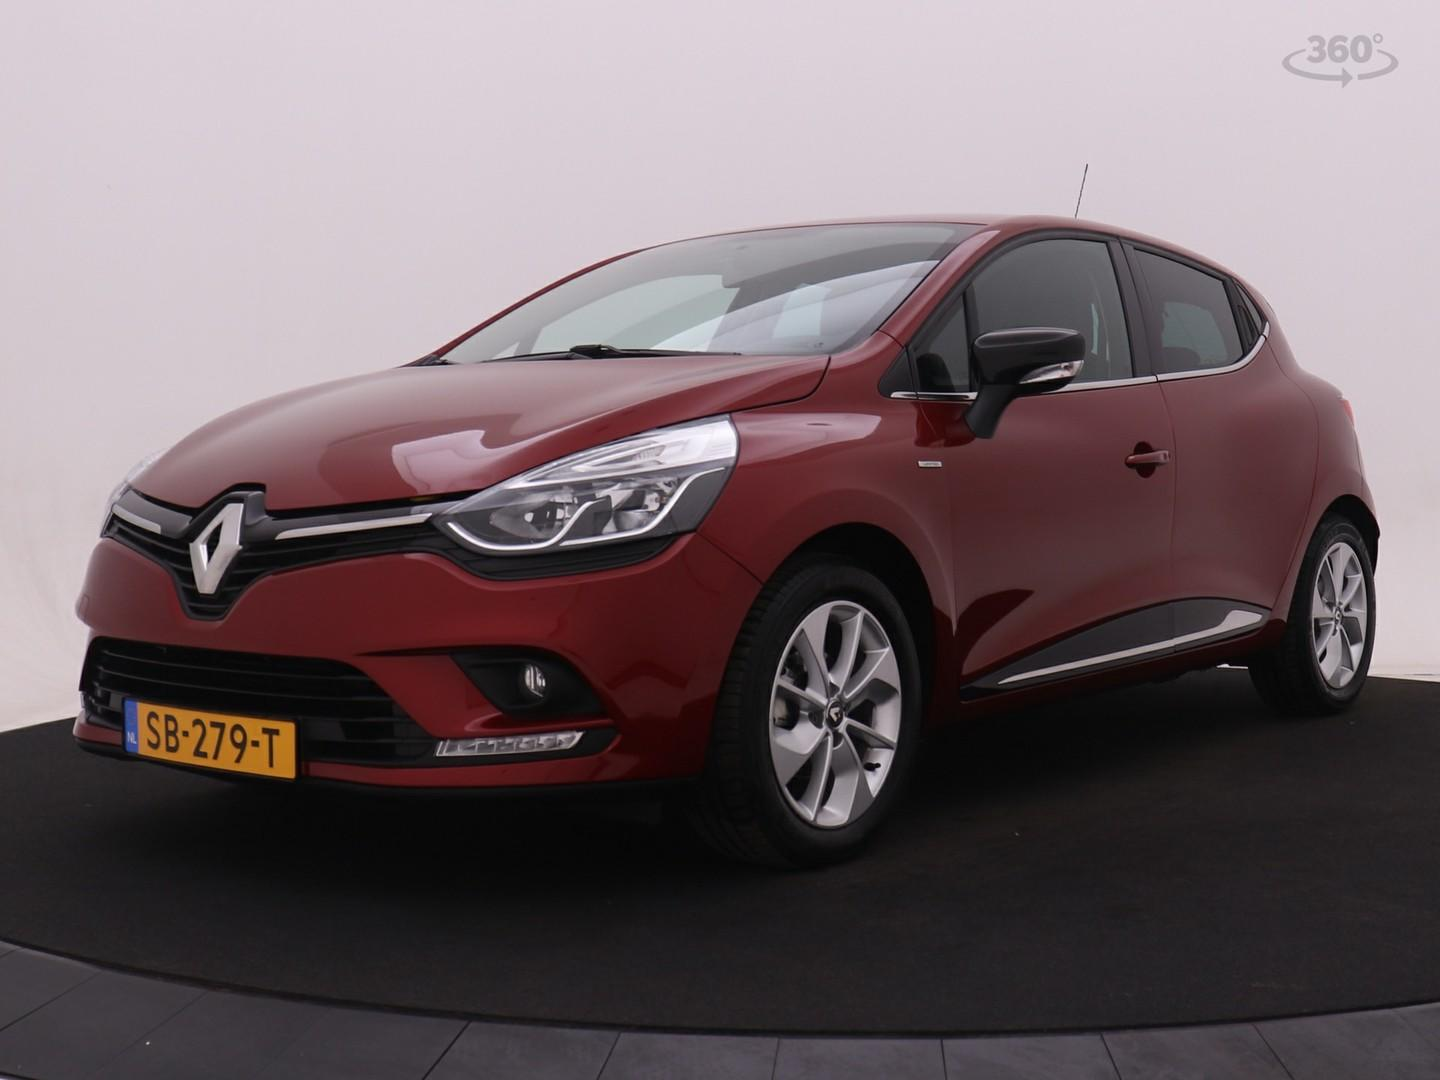 Renault Clio 90 tce limited